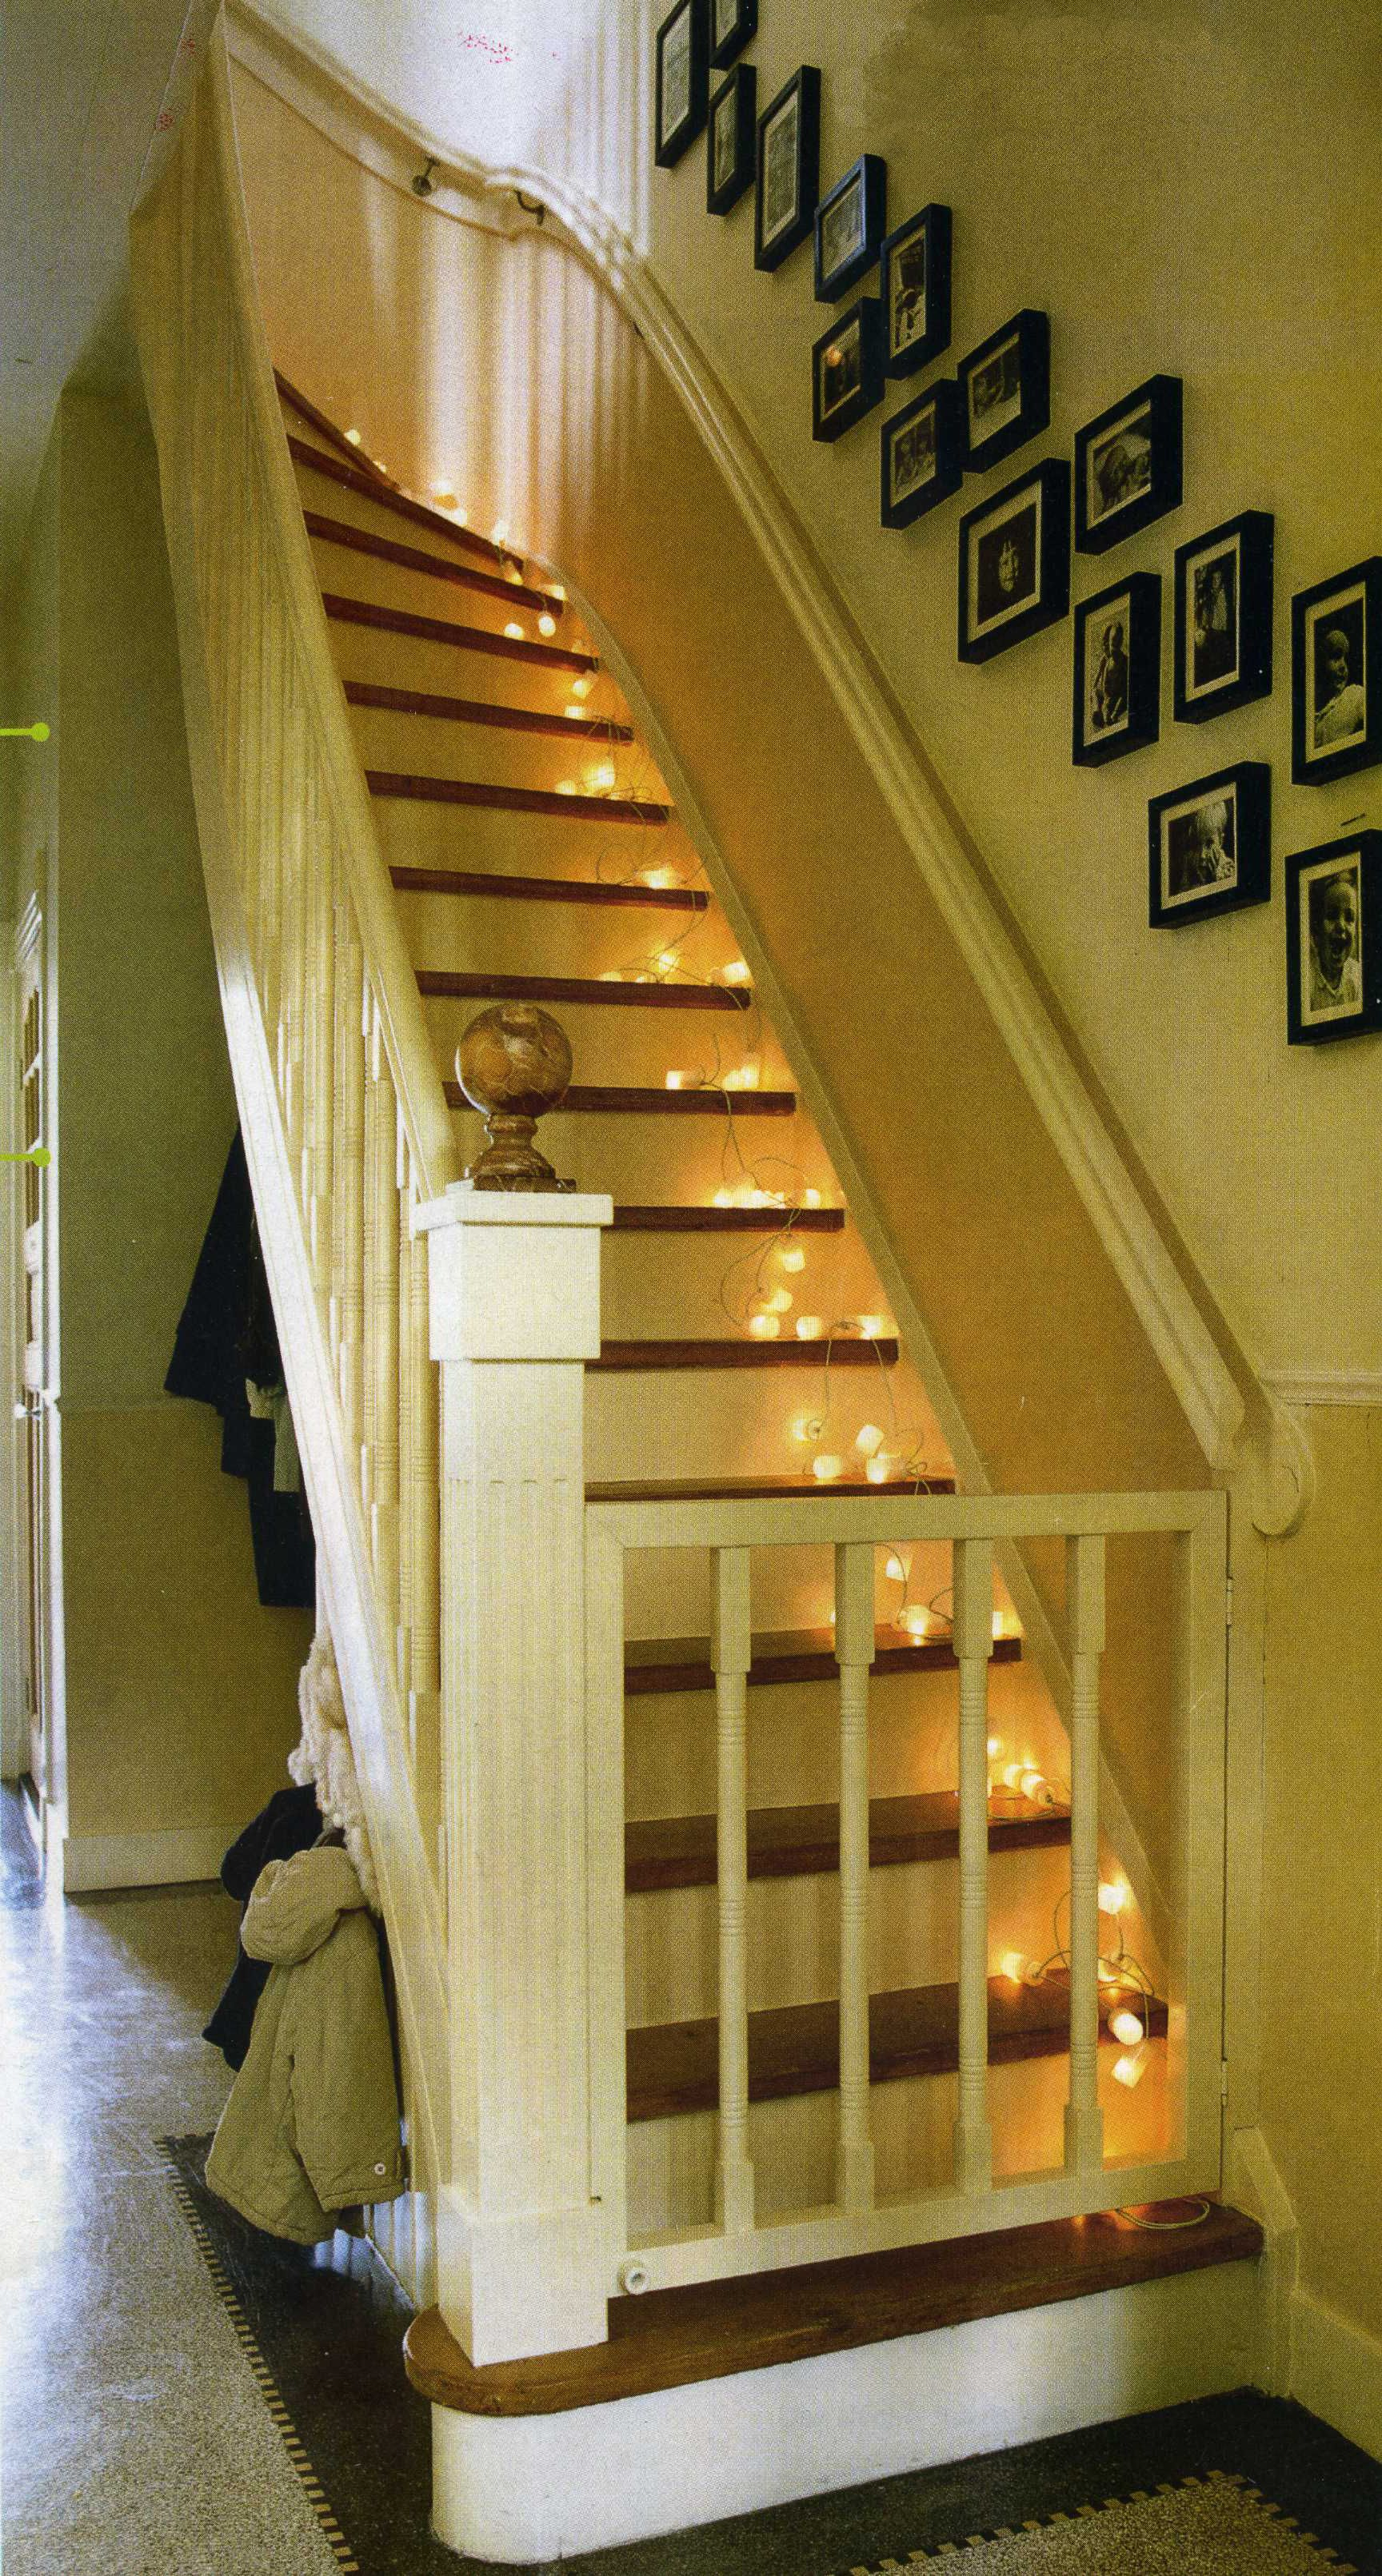 Stair Gate Between Kitchen And Utility. We Coud Make This Using Some Stair  Spindals And